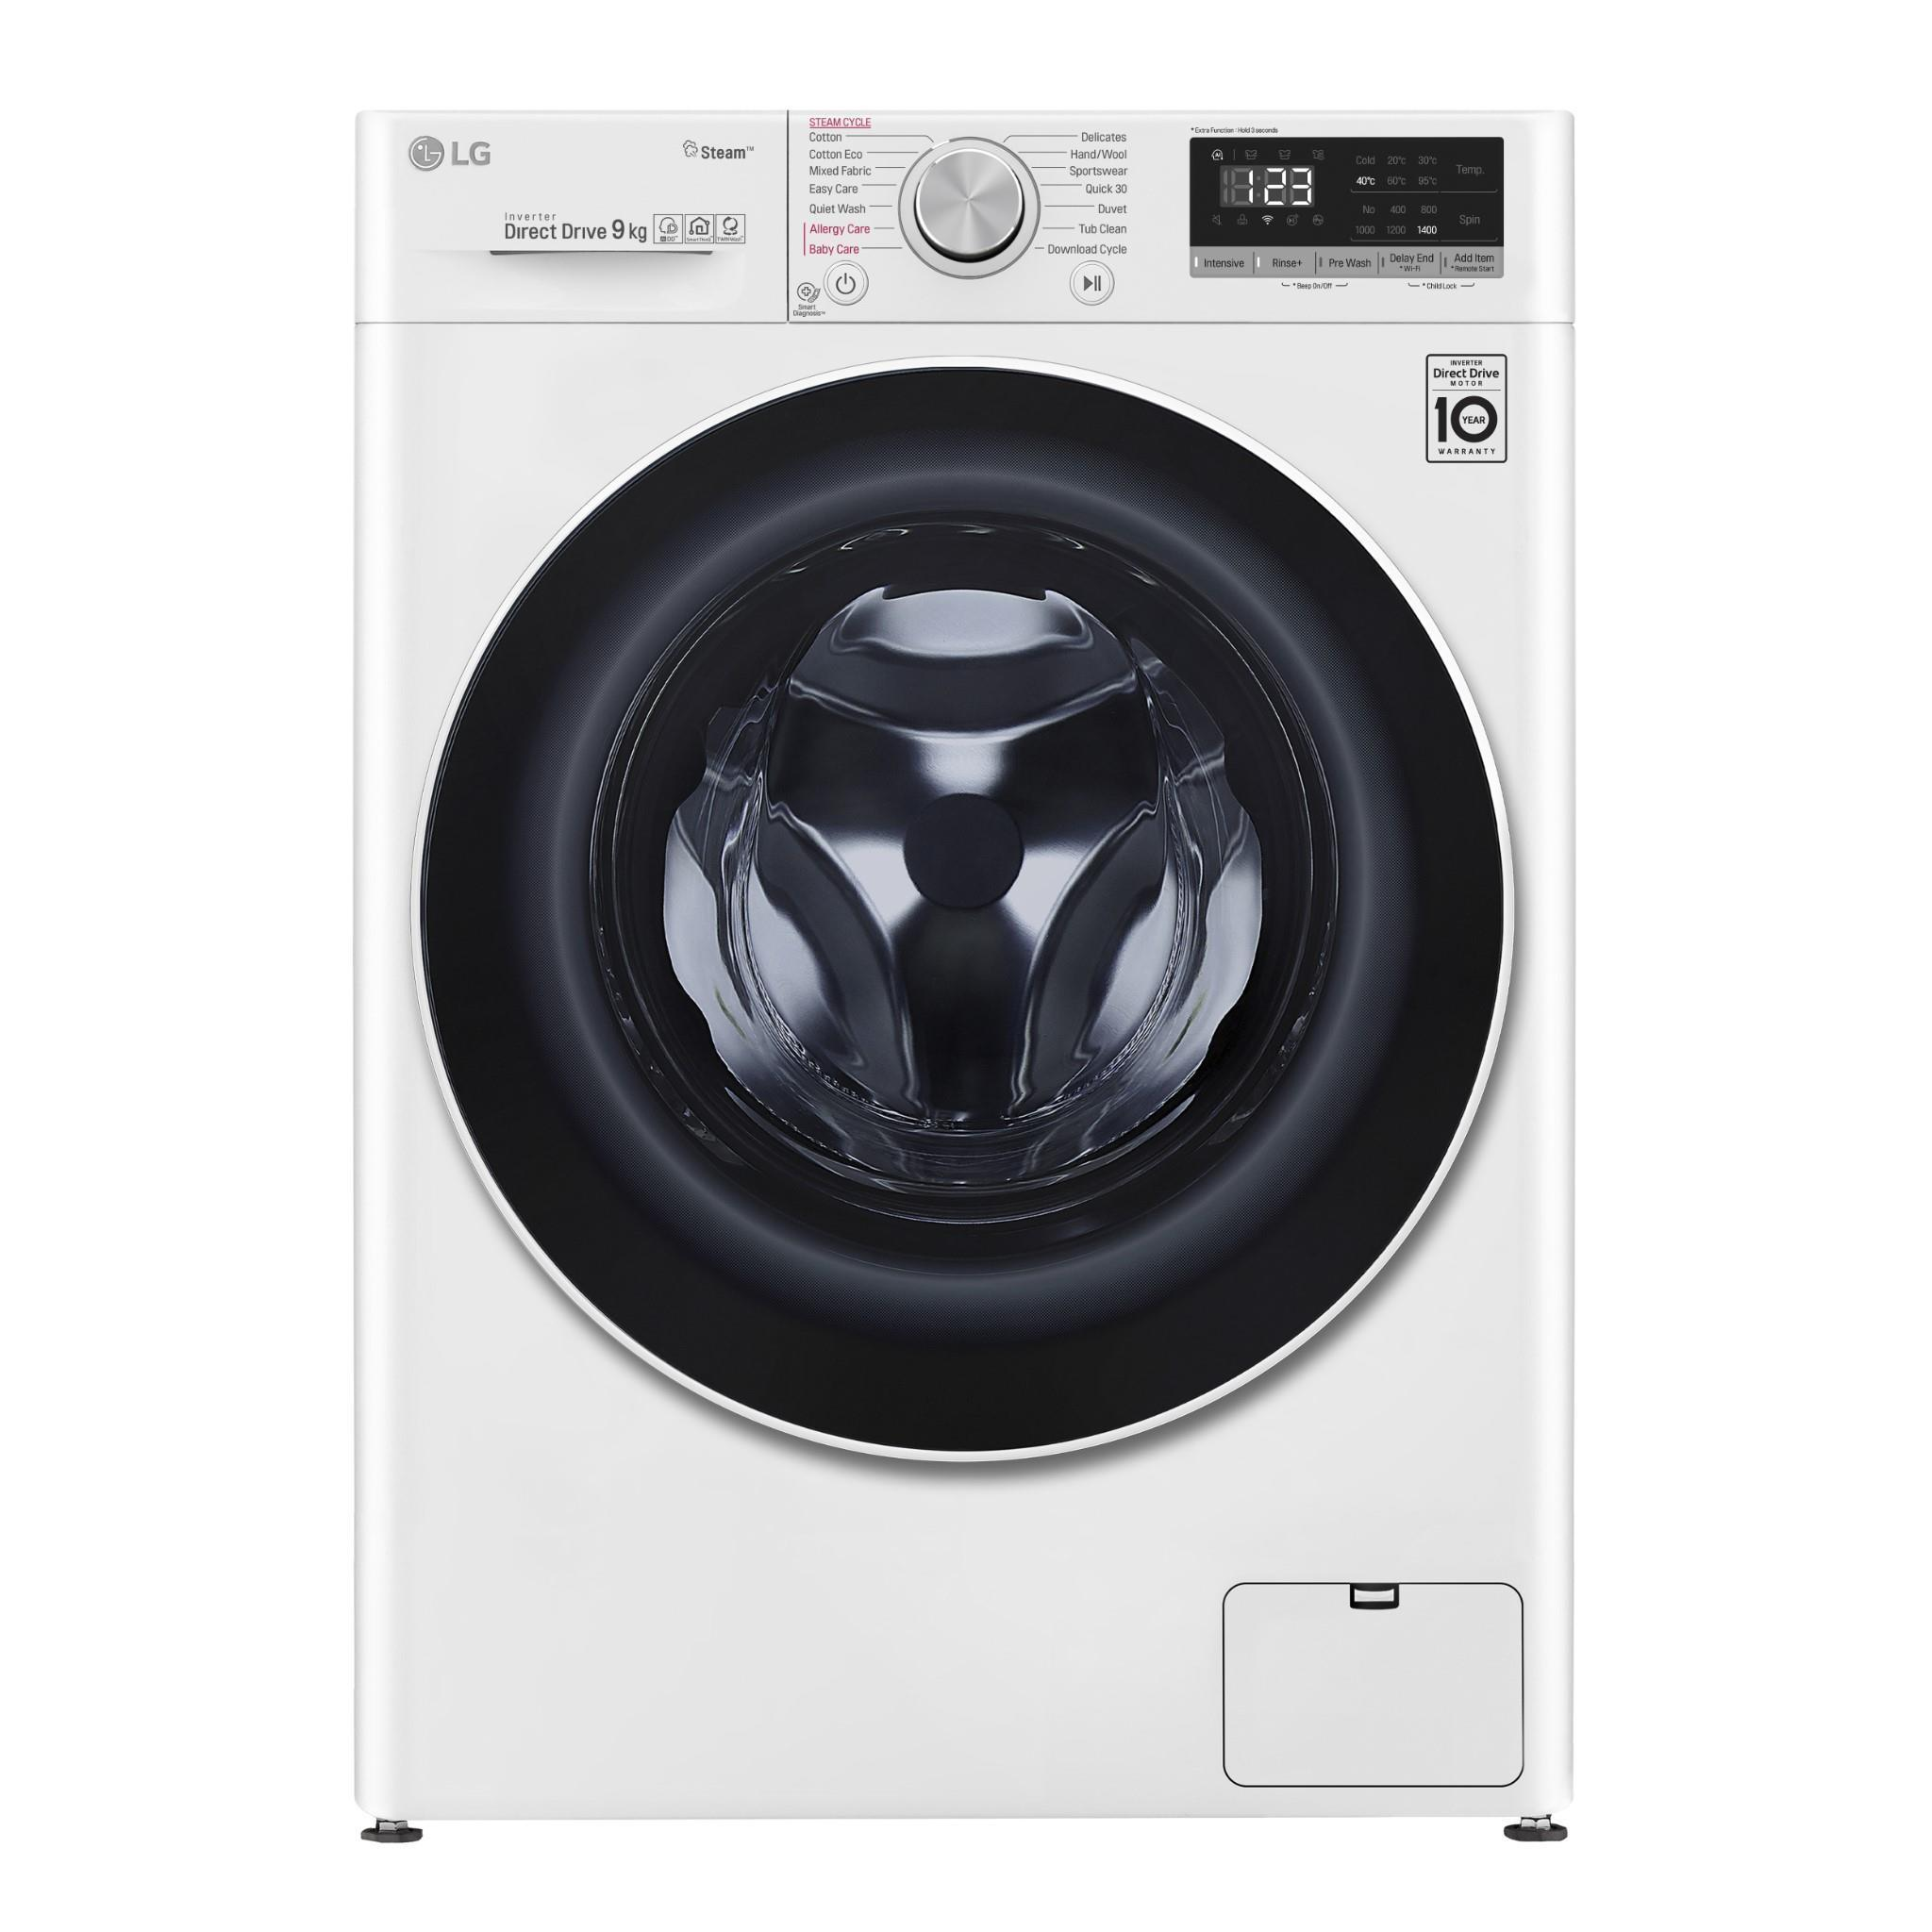 LG WV5-1409W 9kg AI Direct Drive Front Load Washer with Steam